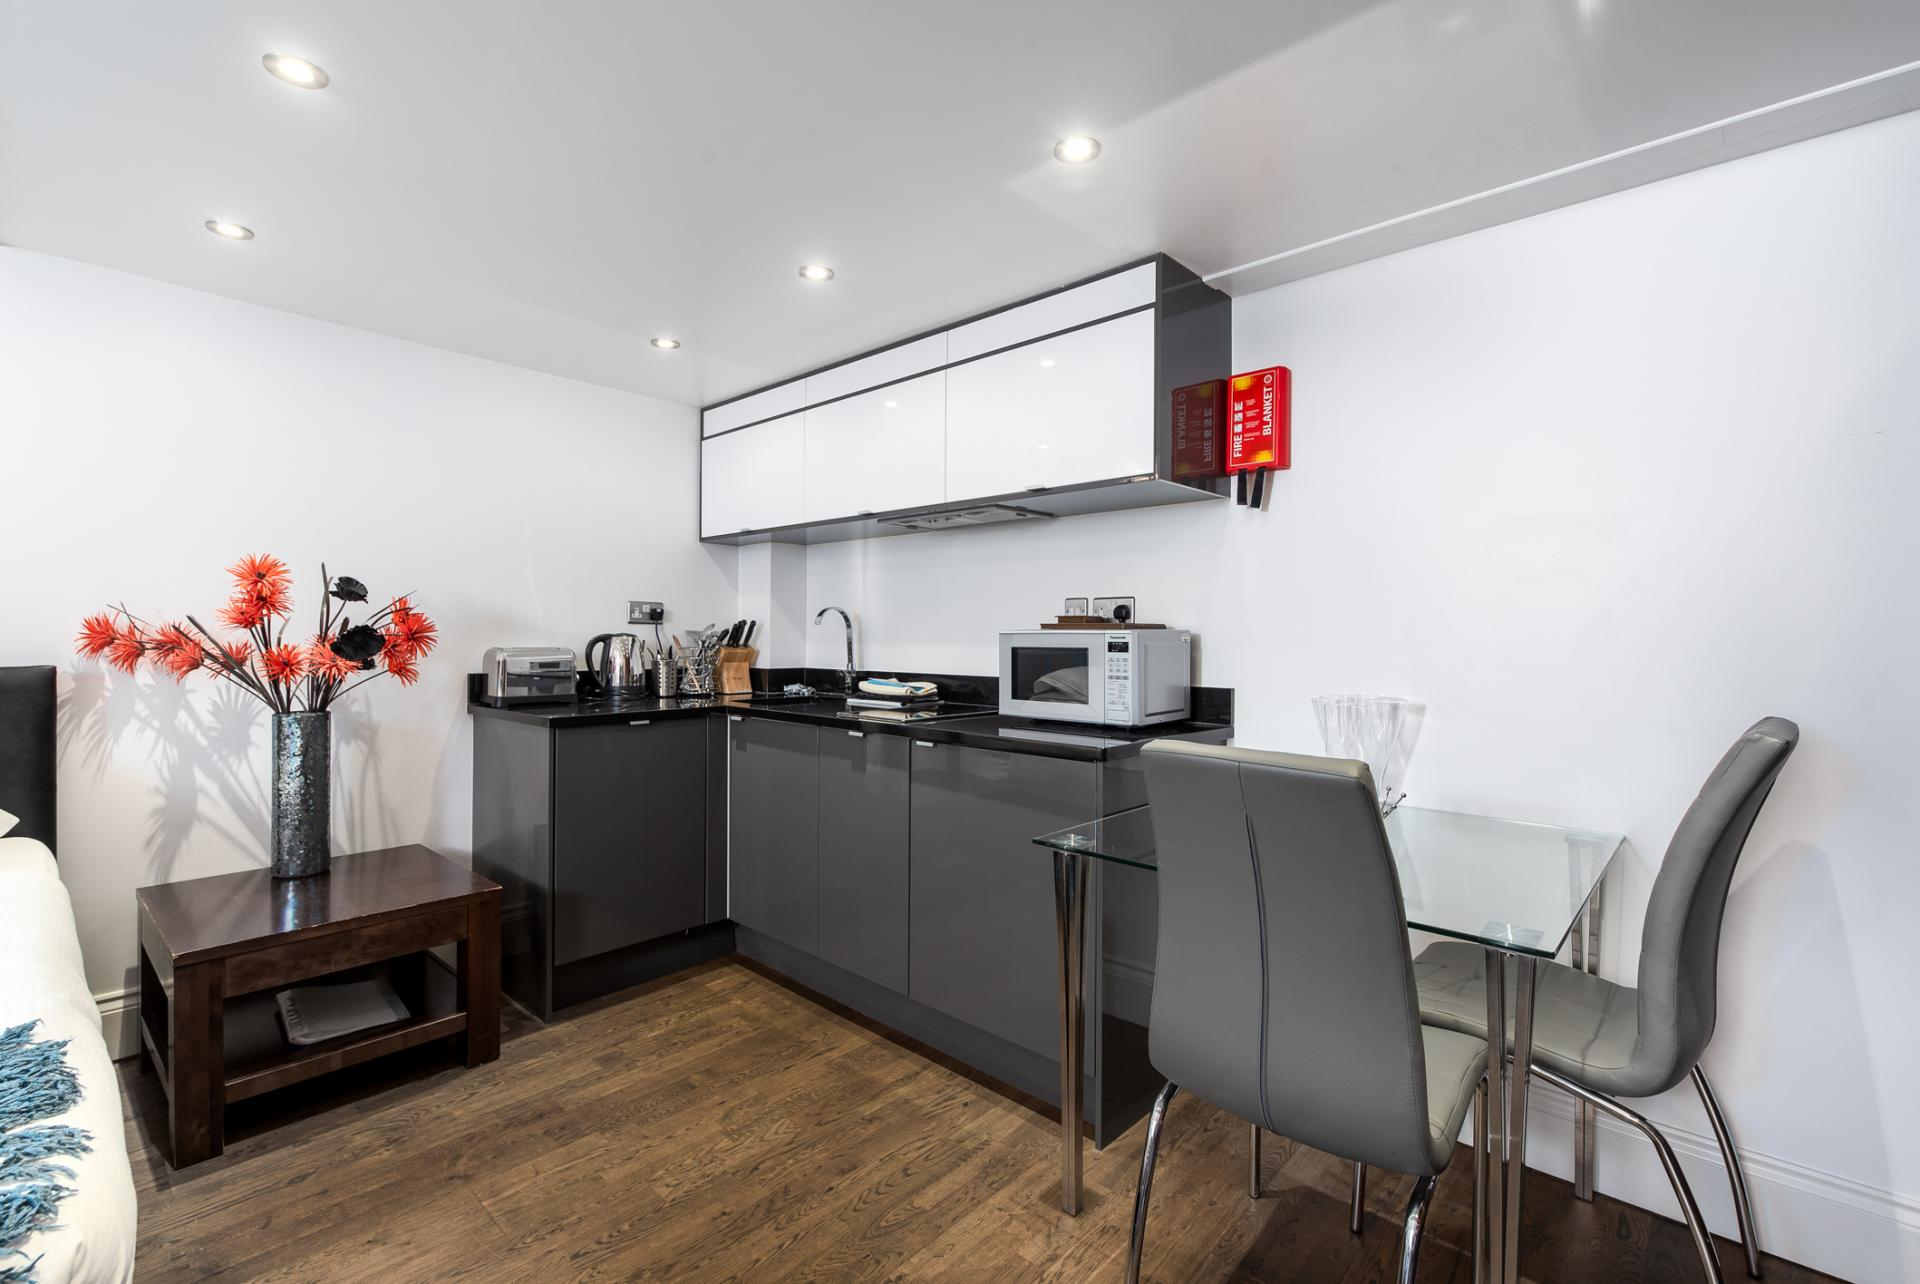 Kitchen diner at Chelsea Green Apartments, Chelsea, London - Citybase Apartments